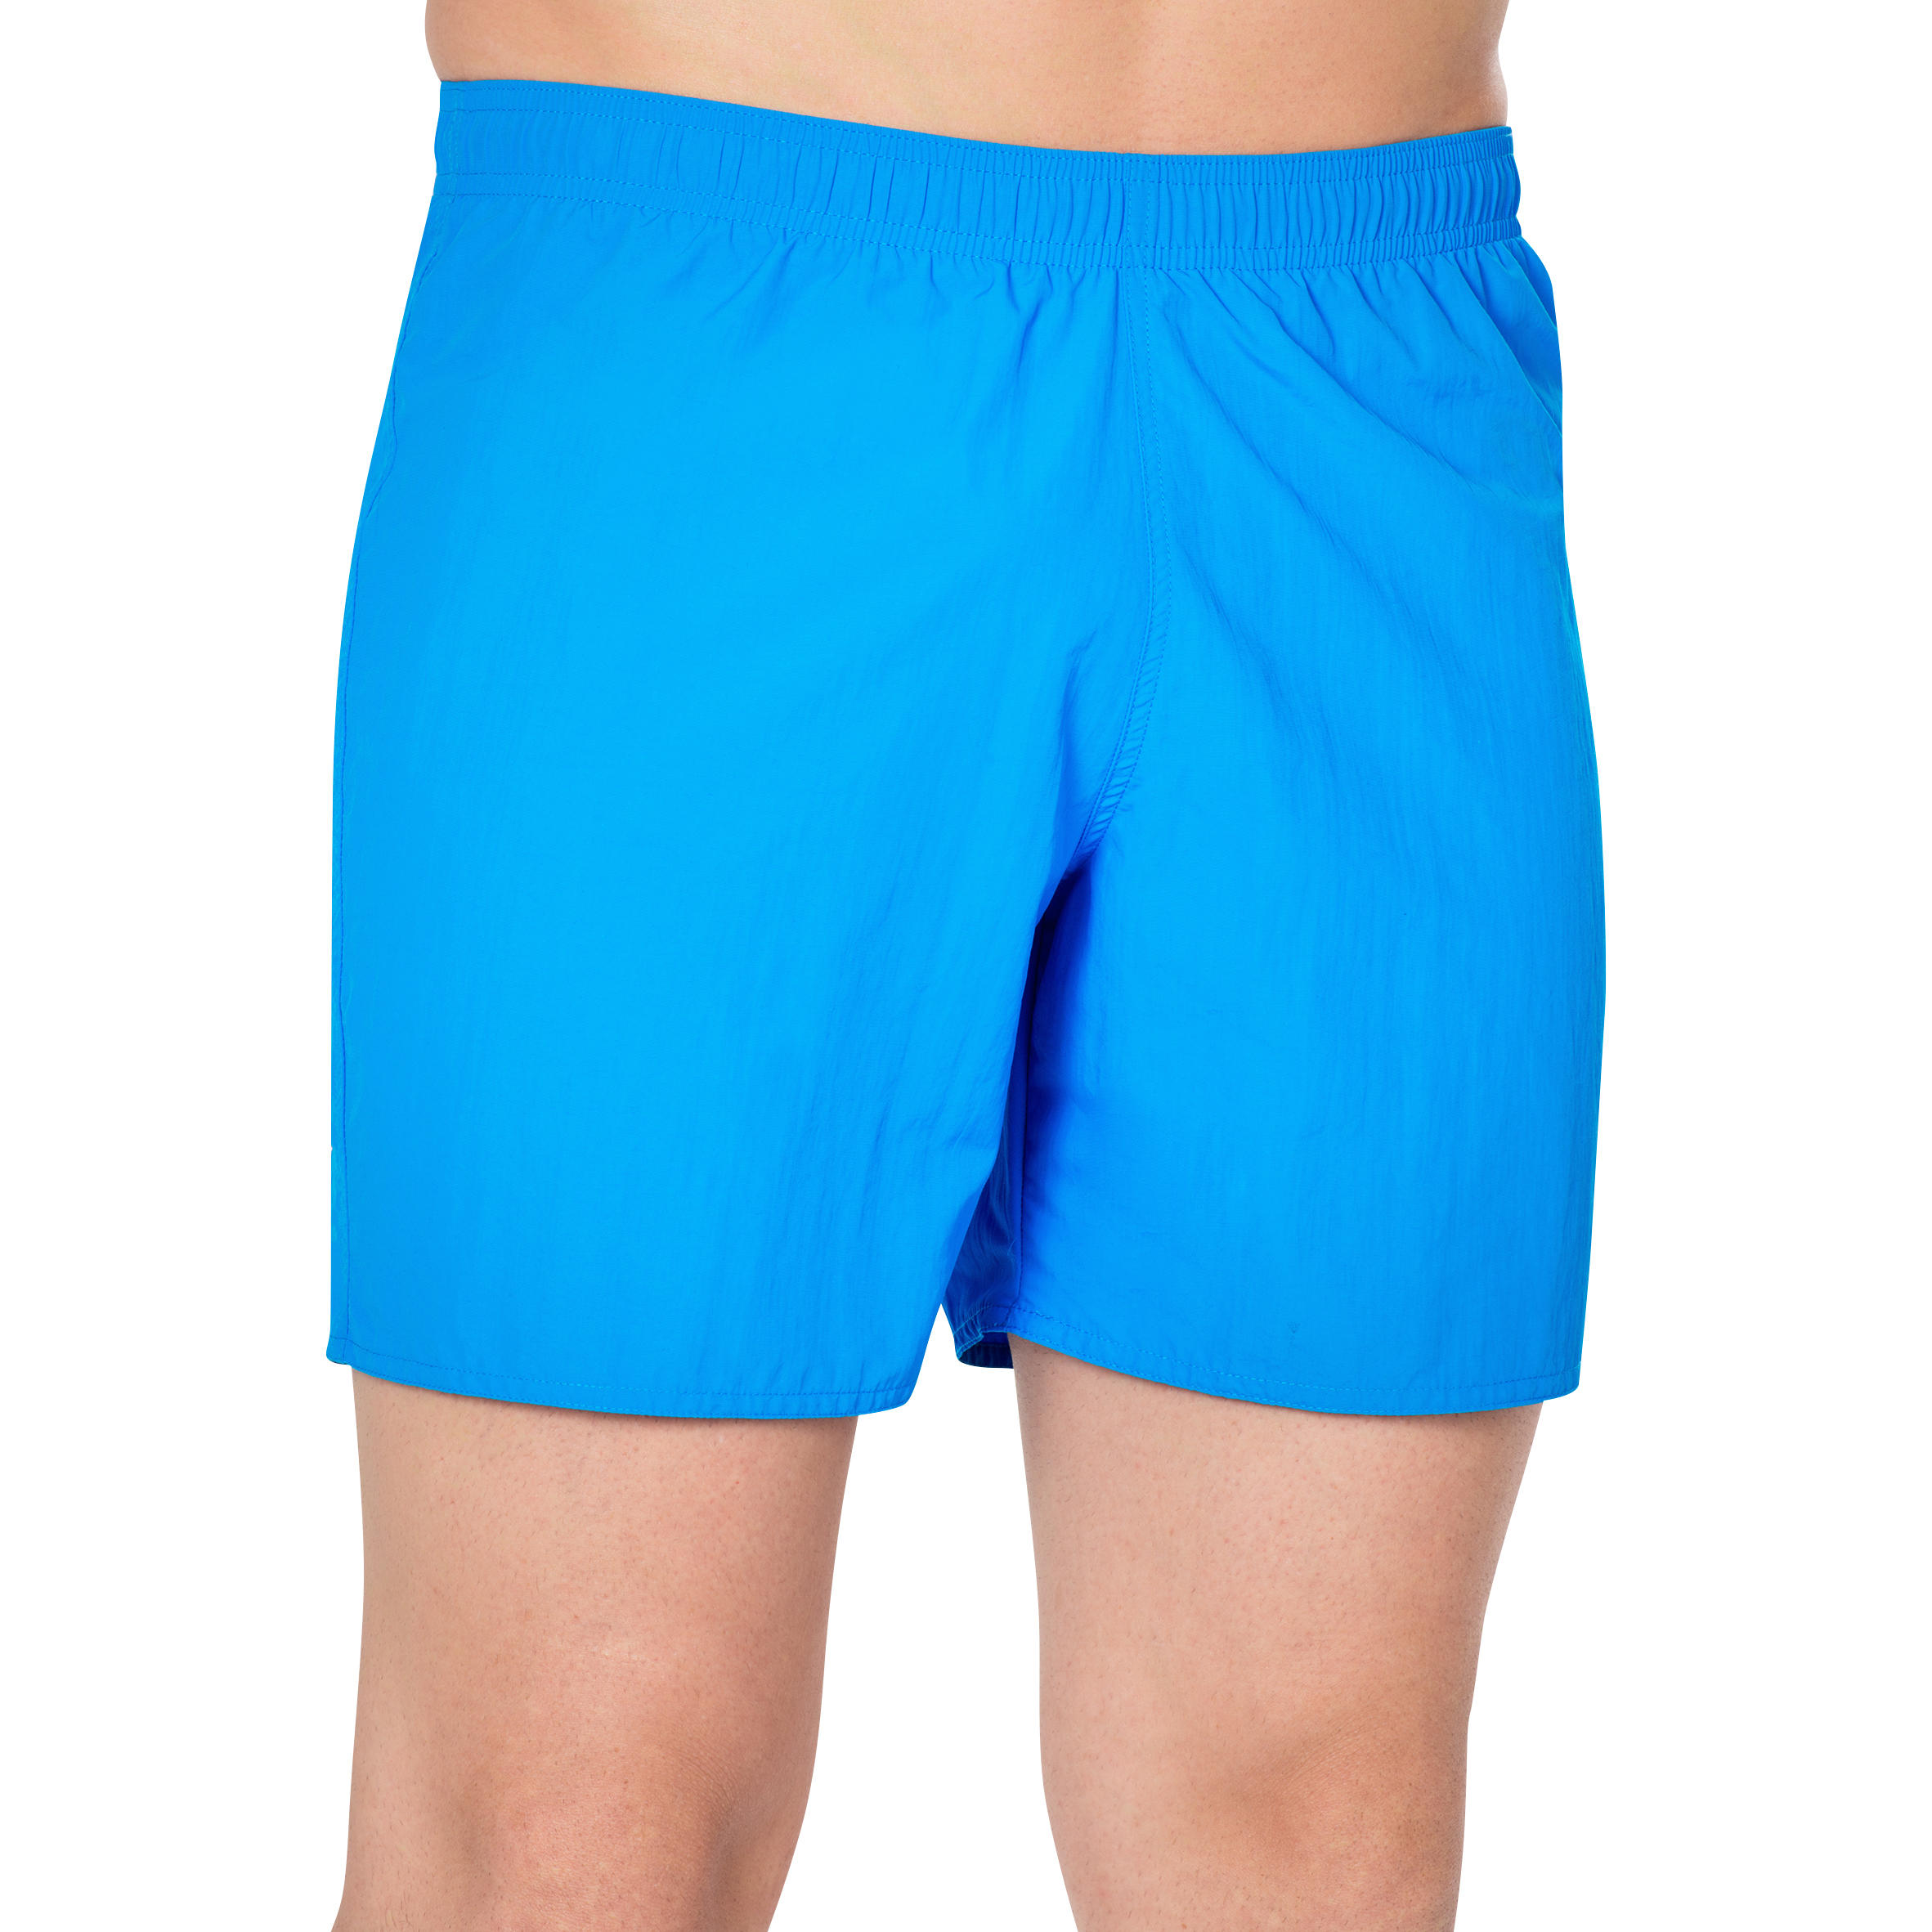 100 FREE W MEN'S SWIMSHORT BLUE